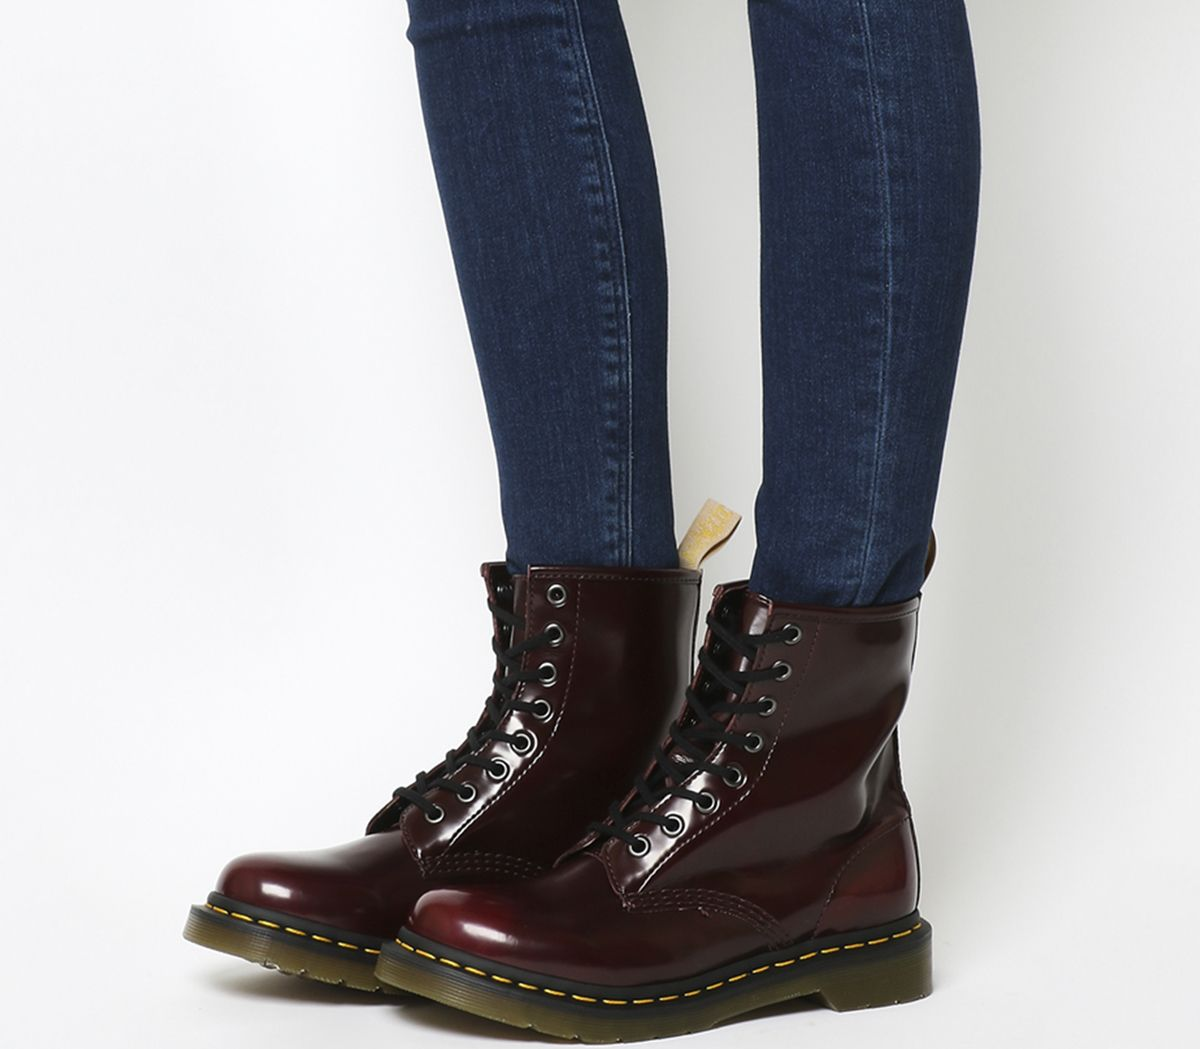 3f2275b8d8e Dr. Martens Vegan 1460 8 Eye Boots Cherry Red Pu - Ankle Boots